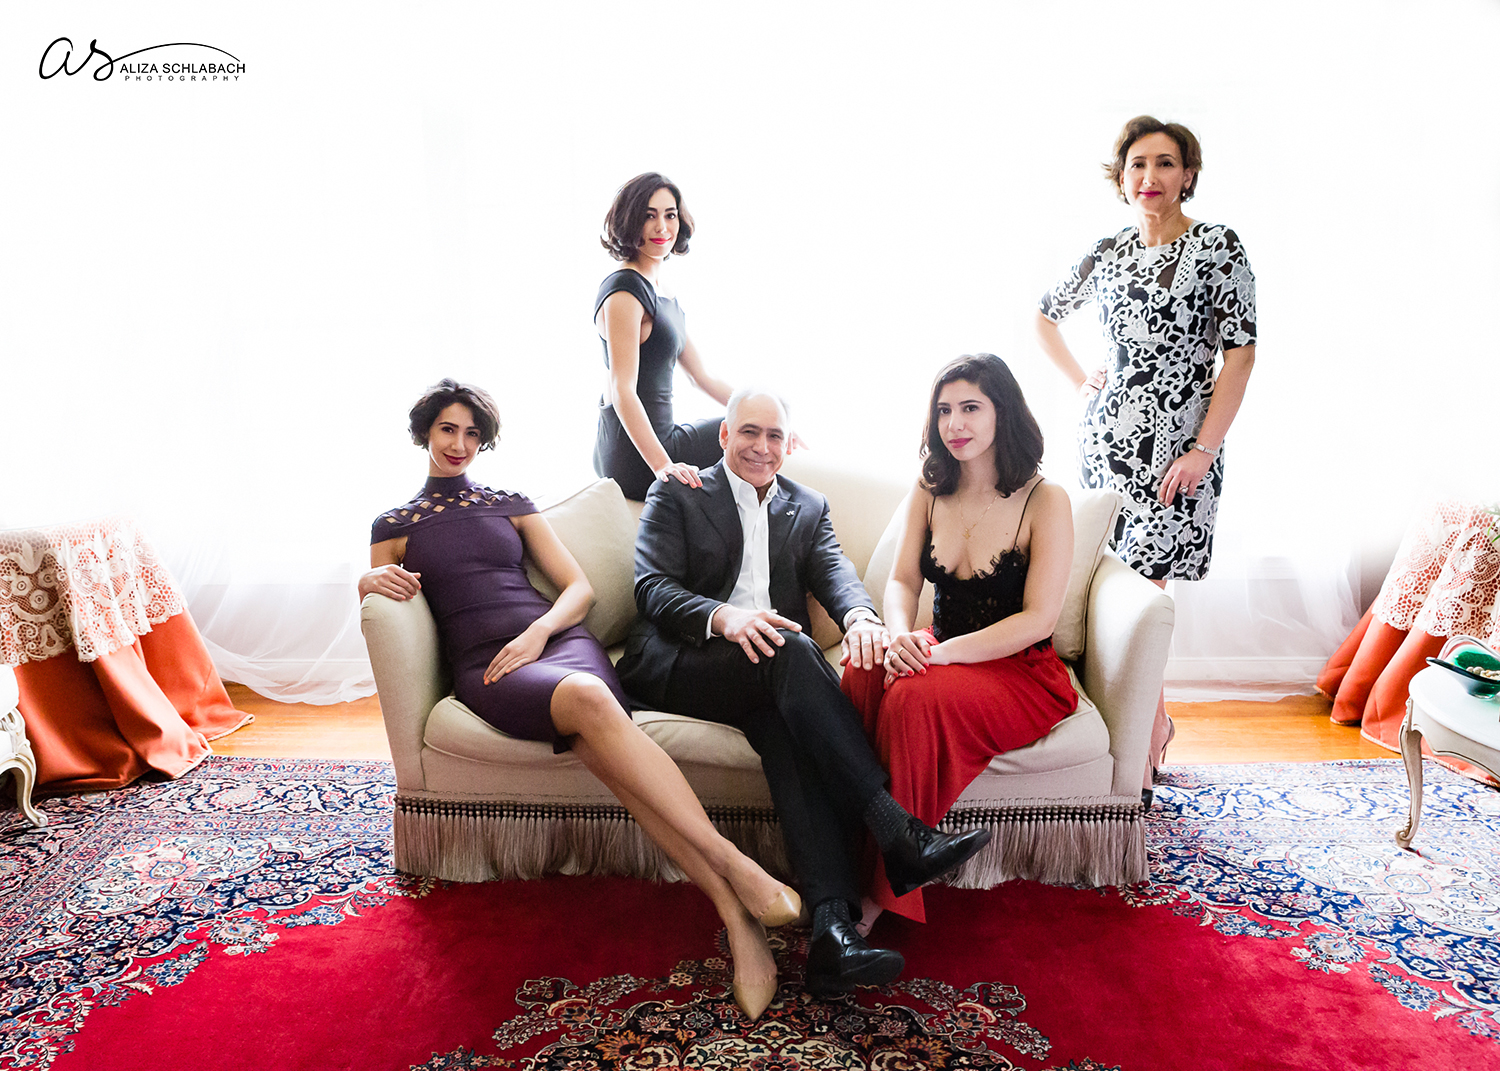 Formal backlit portrait of father, mother, and their three gorgeous grown daughters